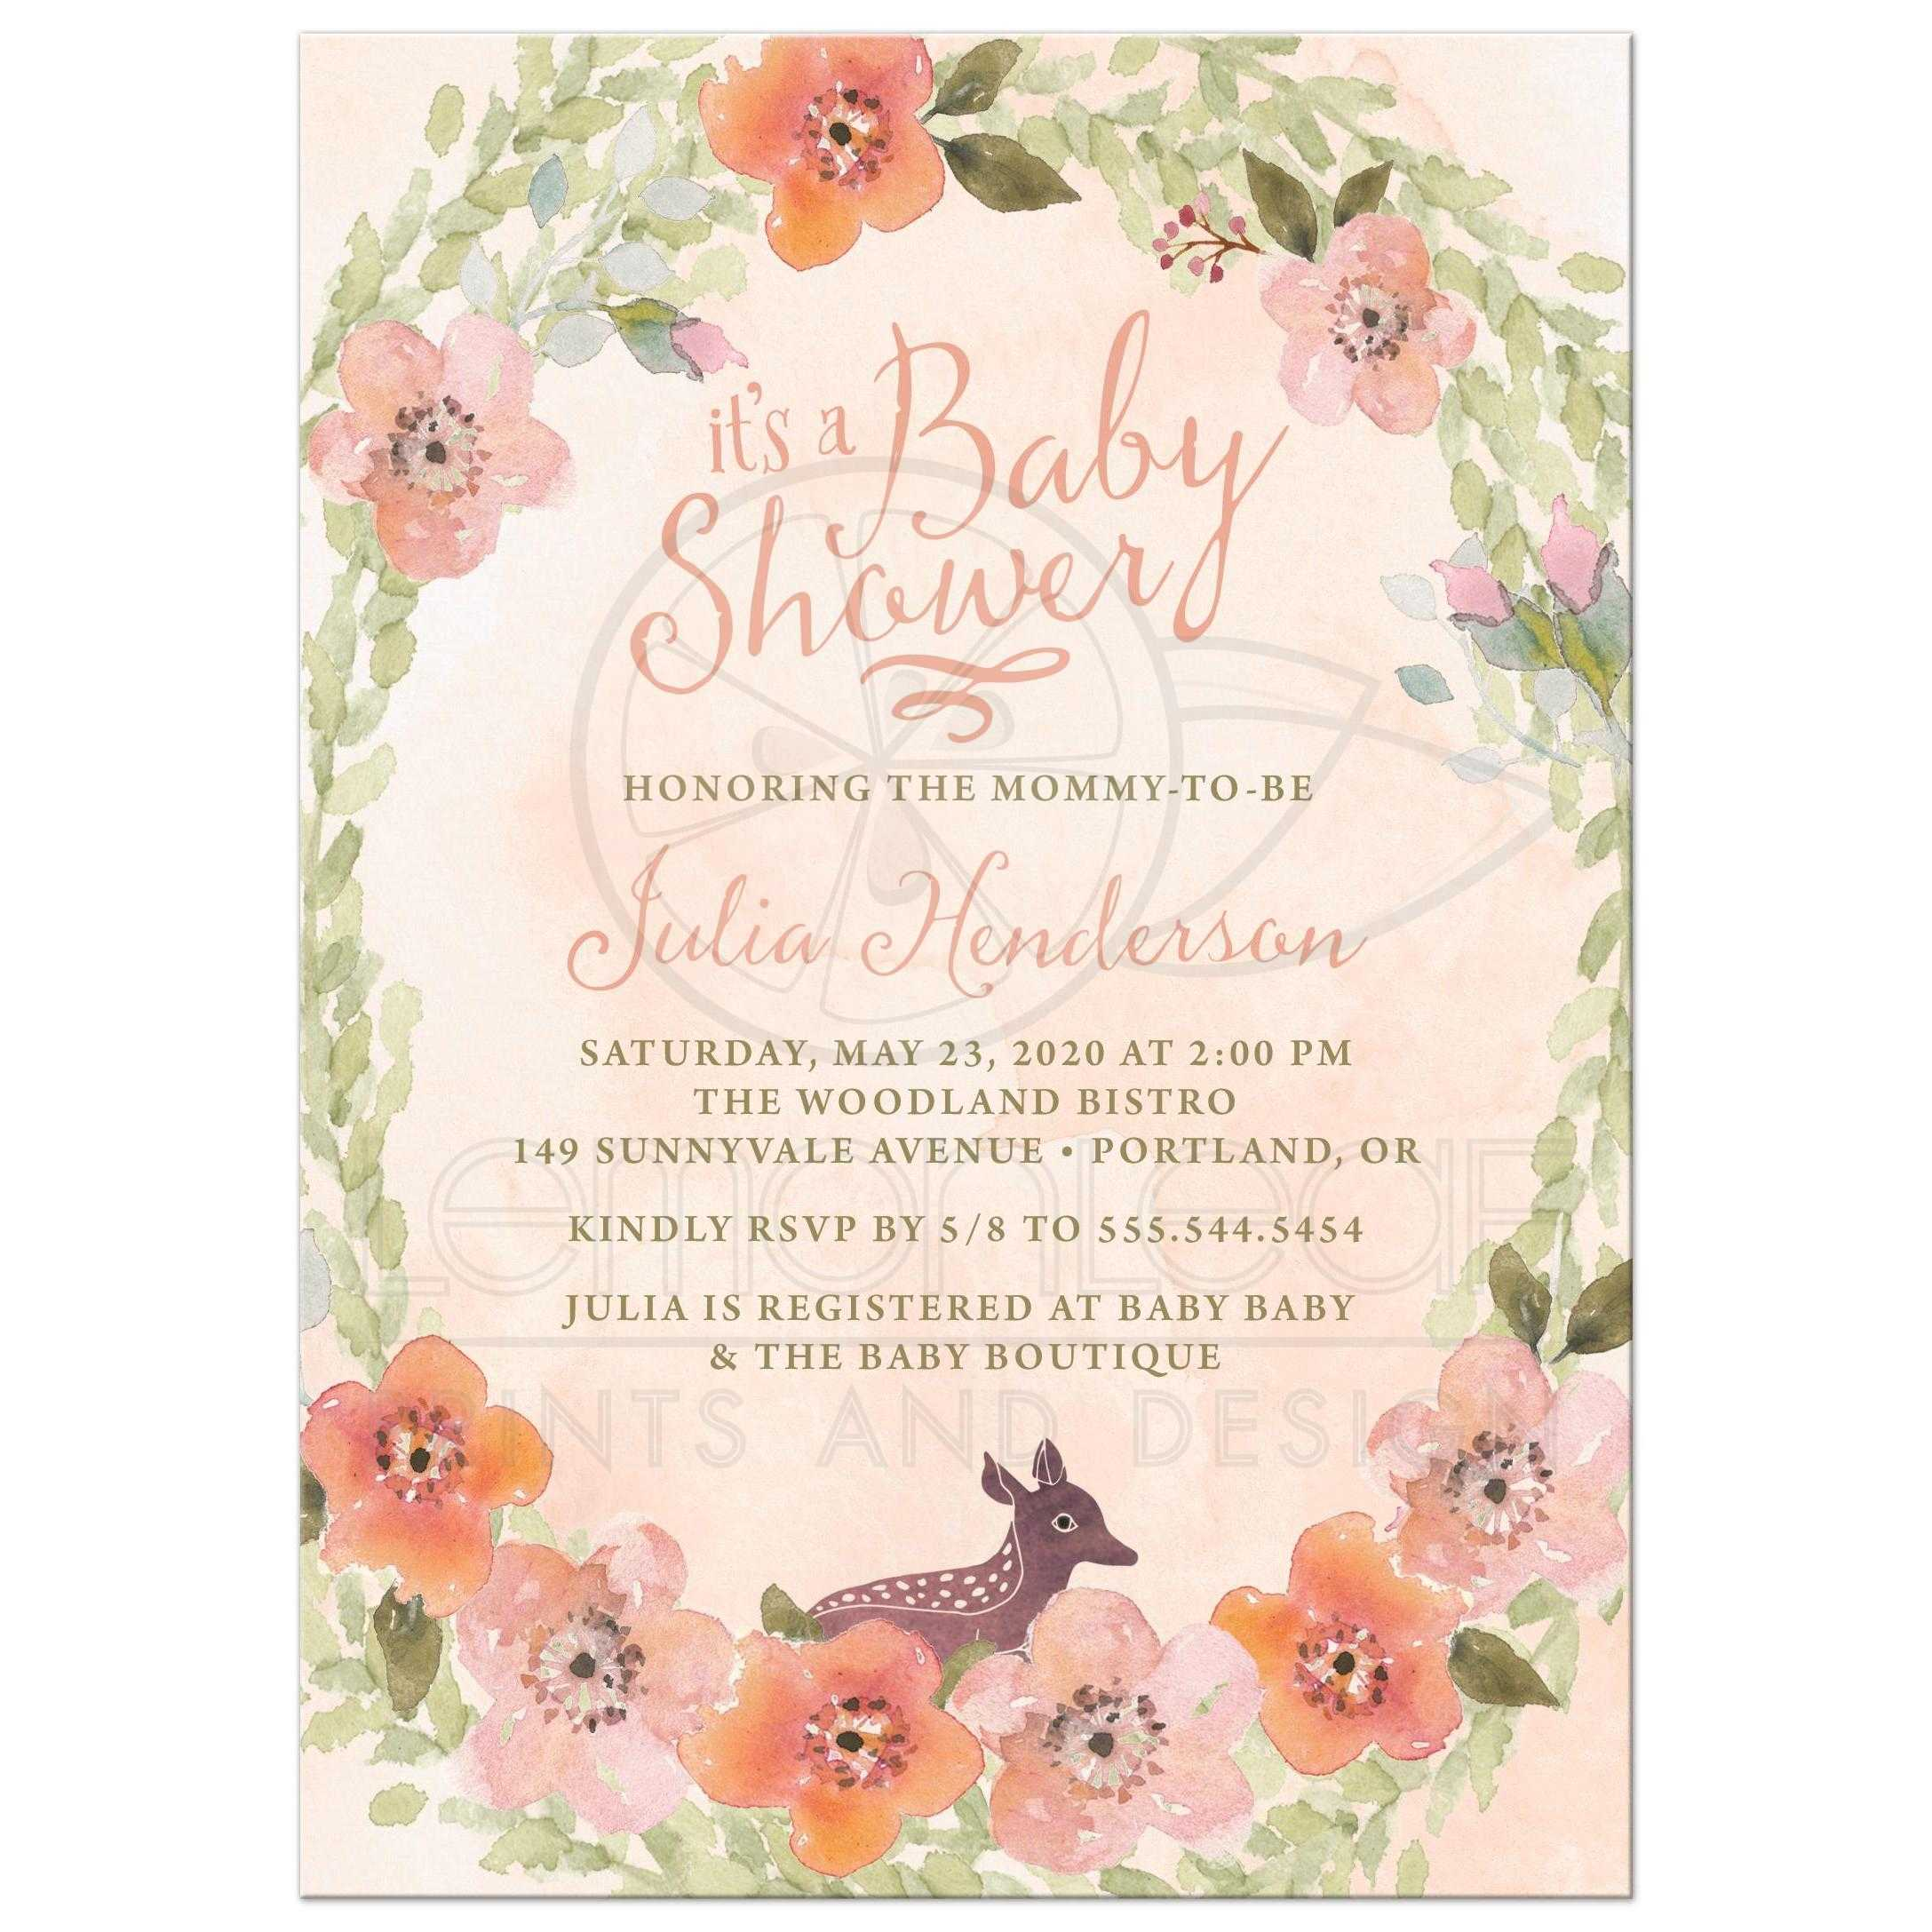 Baby Shower Invitations - Sweet Woodland Florals